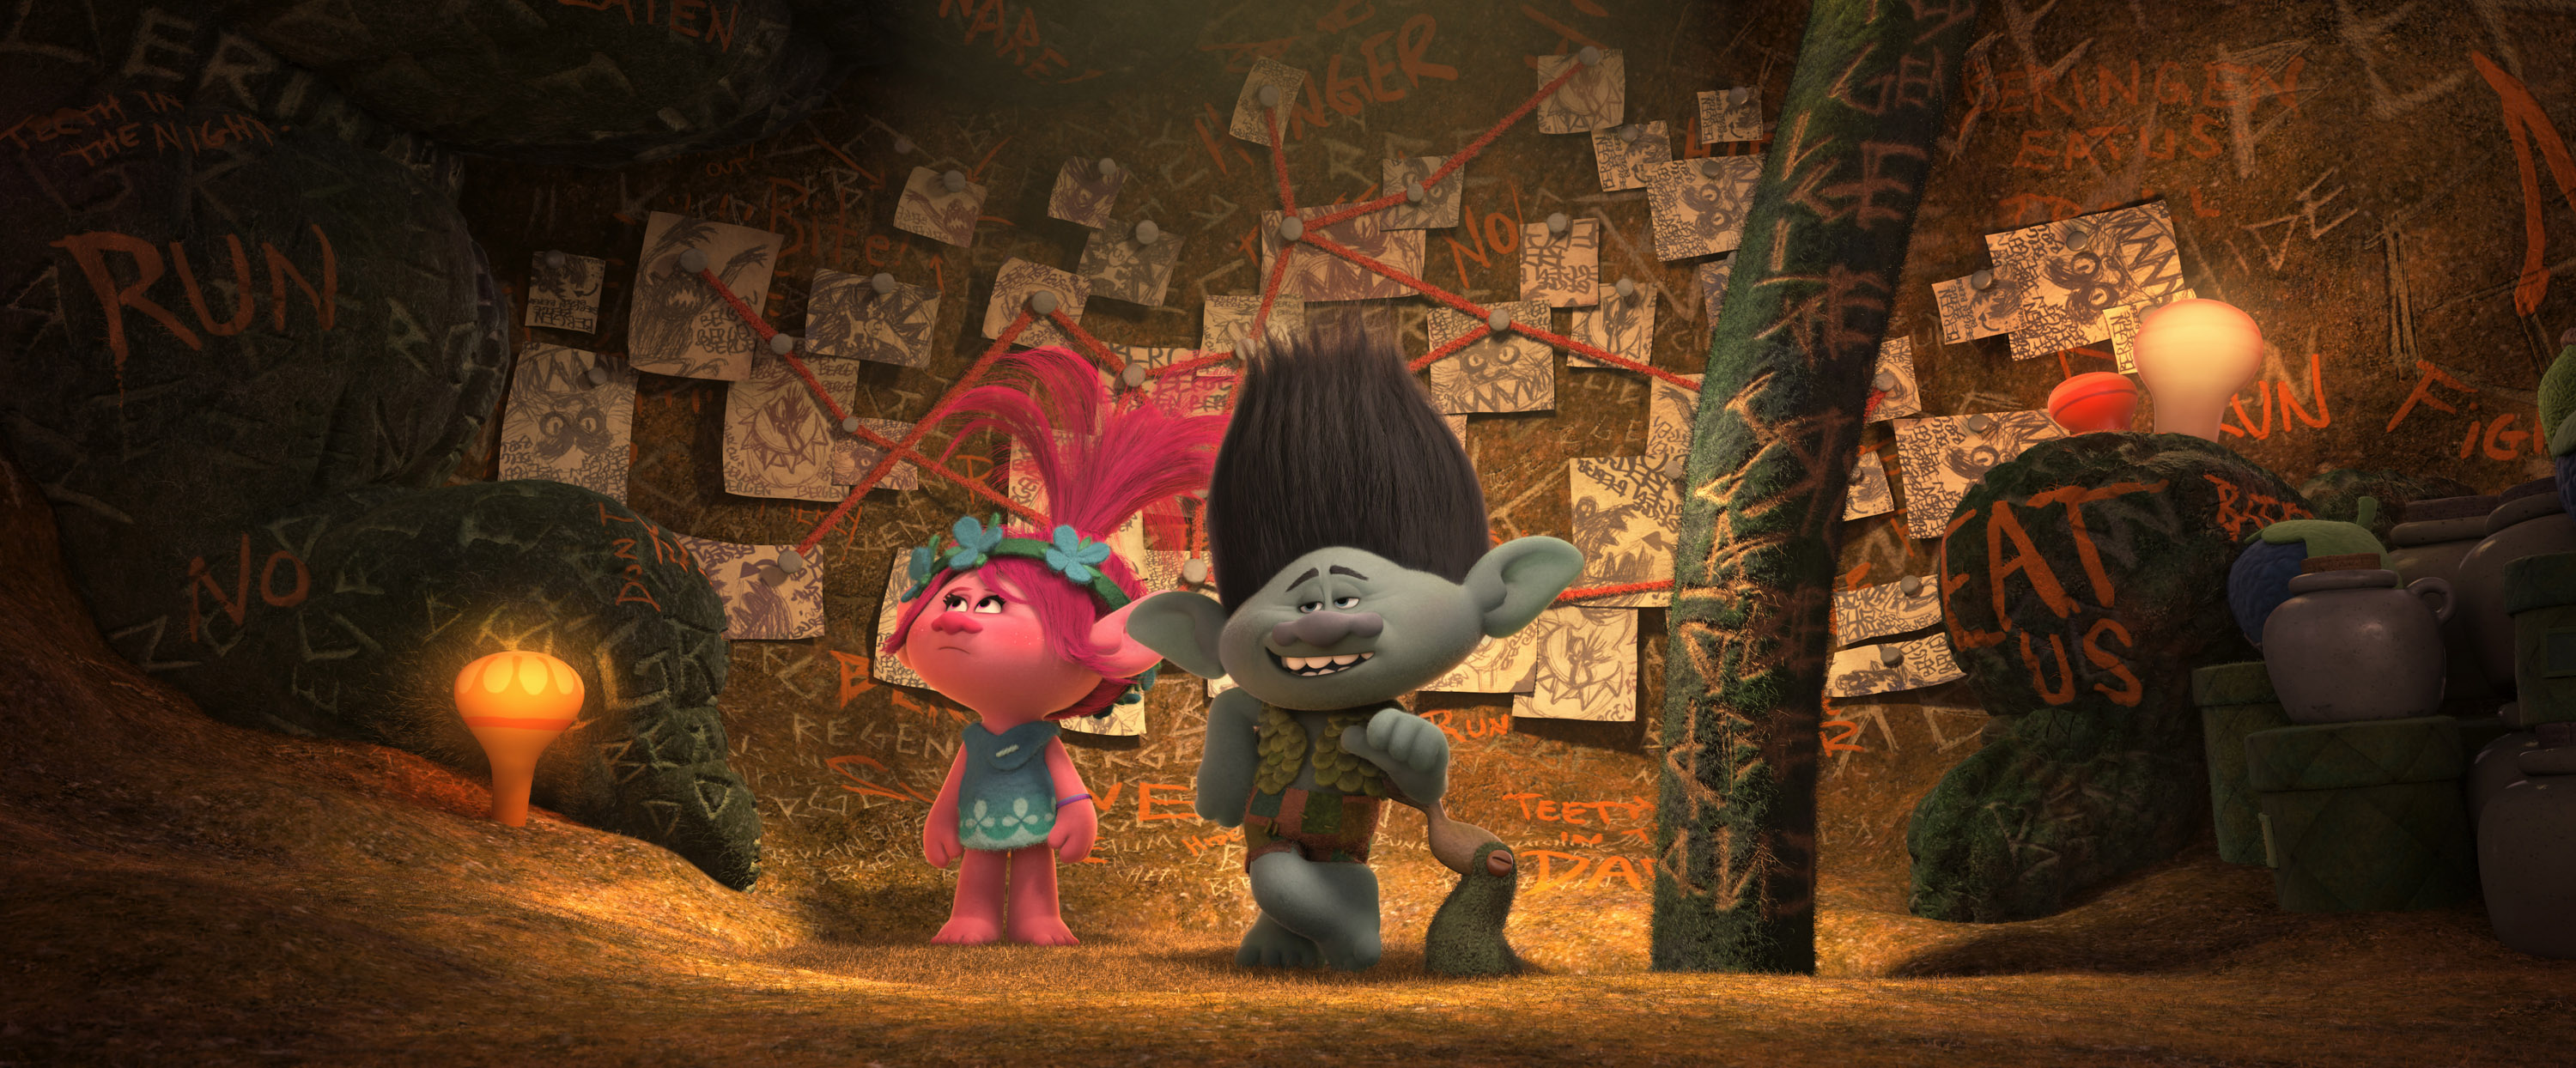 Trolls By Dreamworks Starring Justin Timberlake And Anna